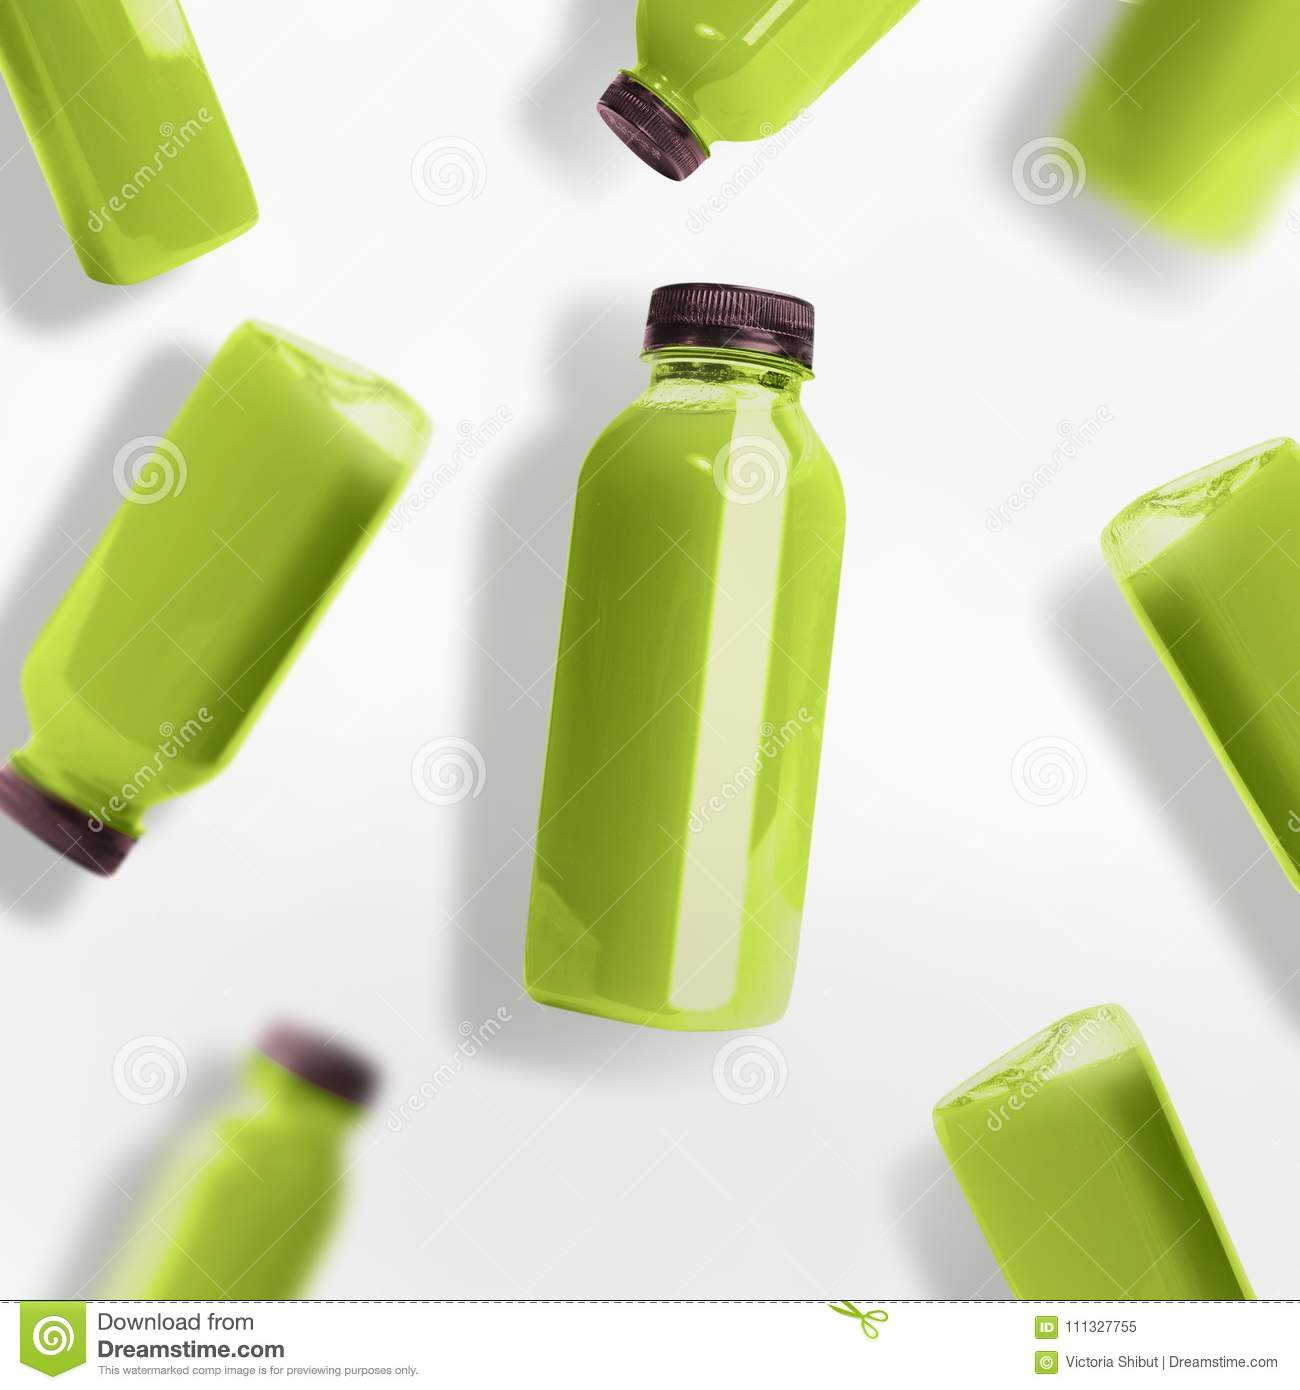 Flying green smoothie or juice bottles pattern on white background, top view